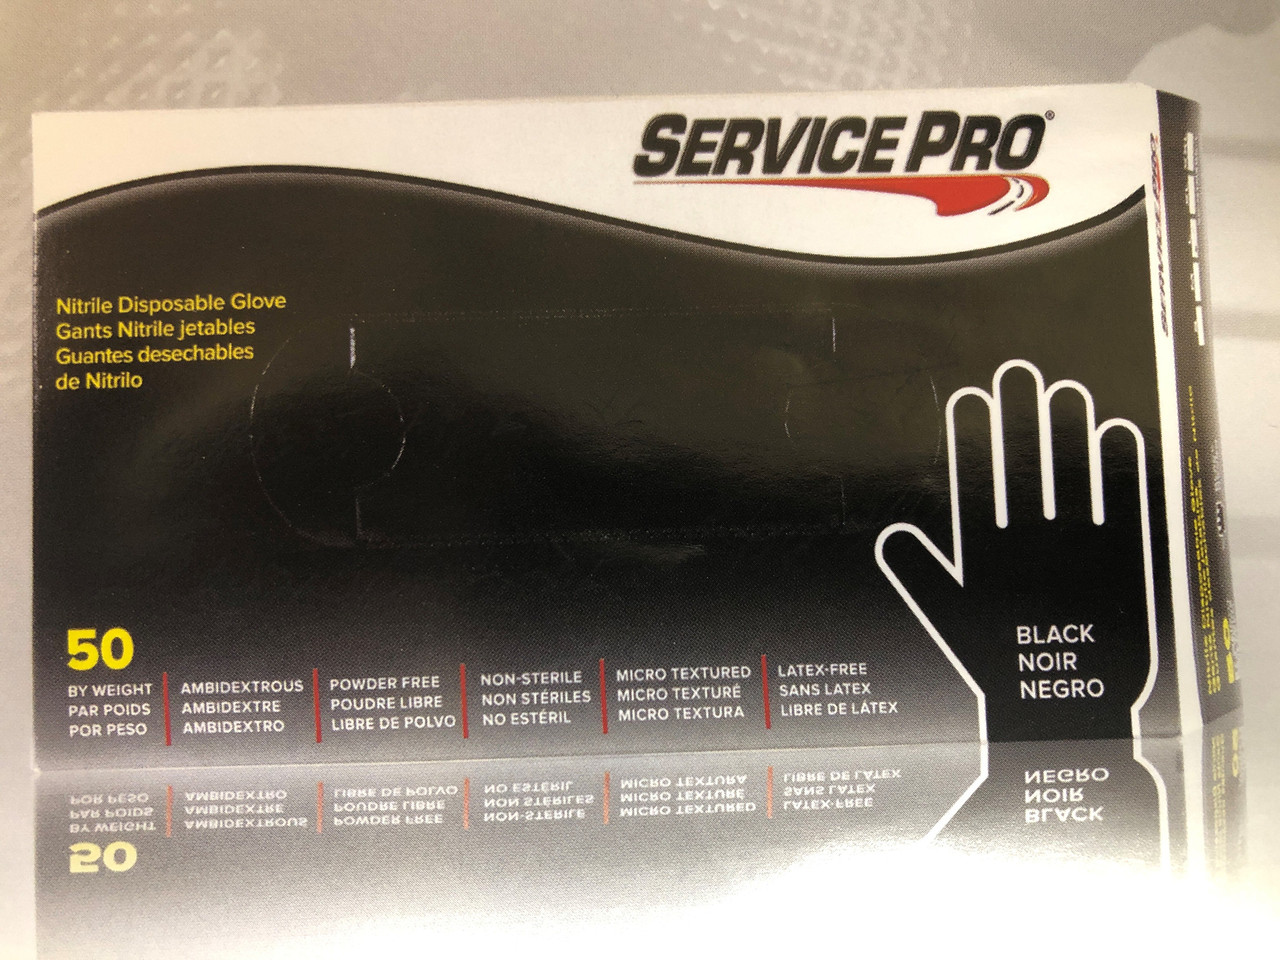 Service Pro Nitrile Disposable Gloves 100 Count -Large